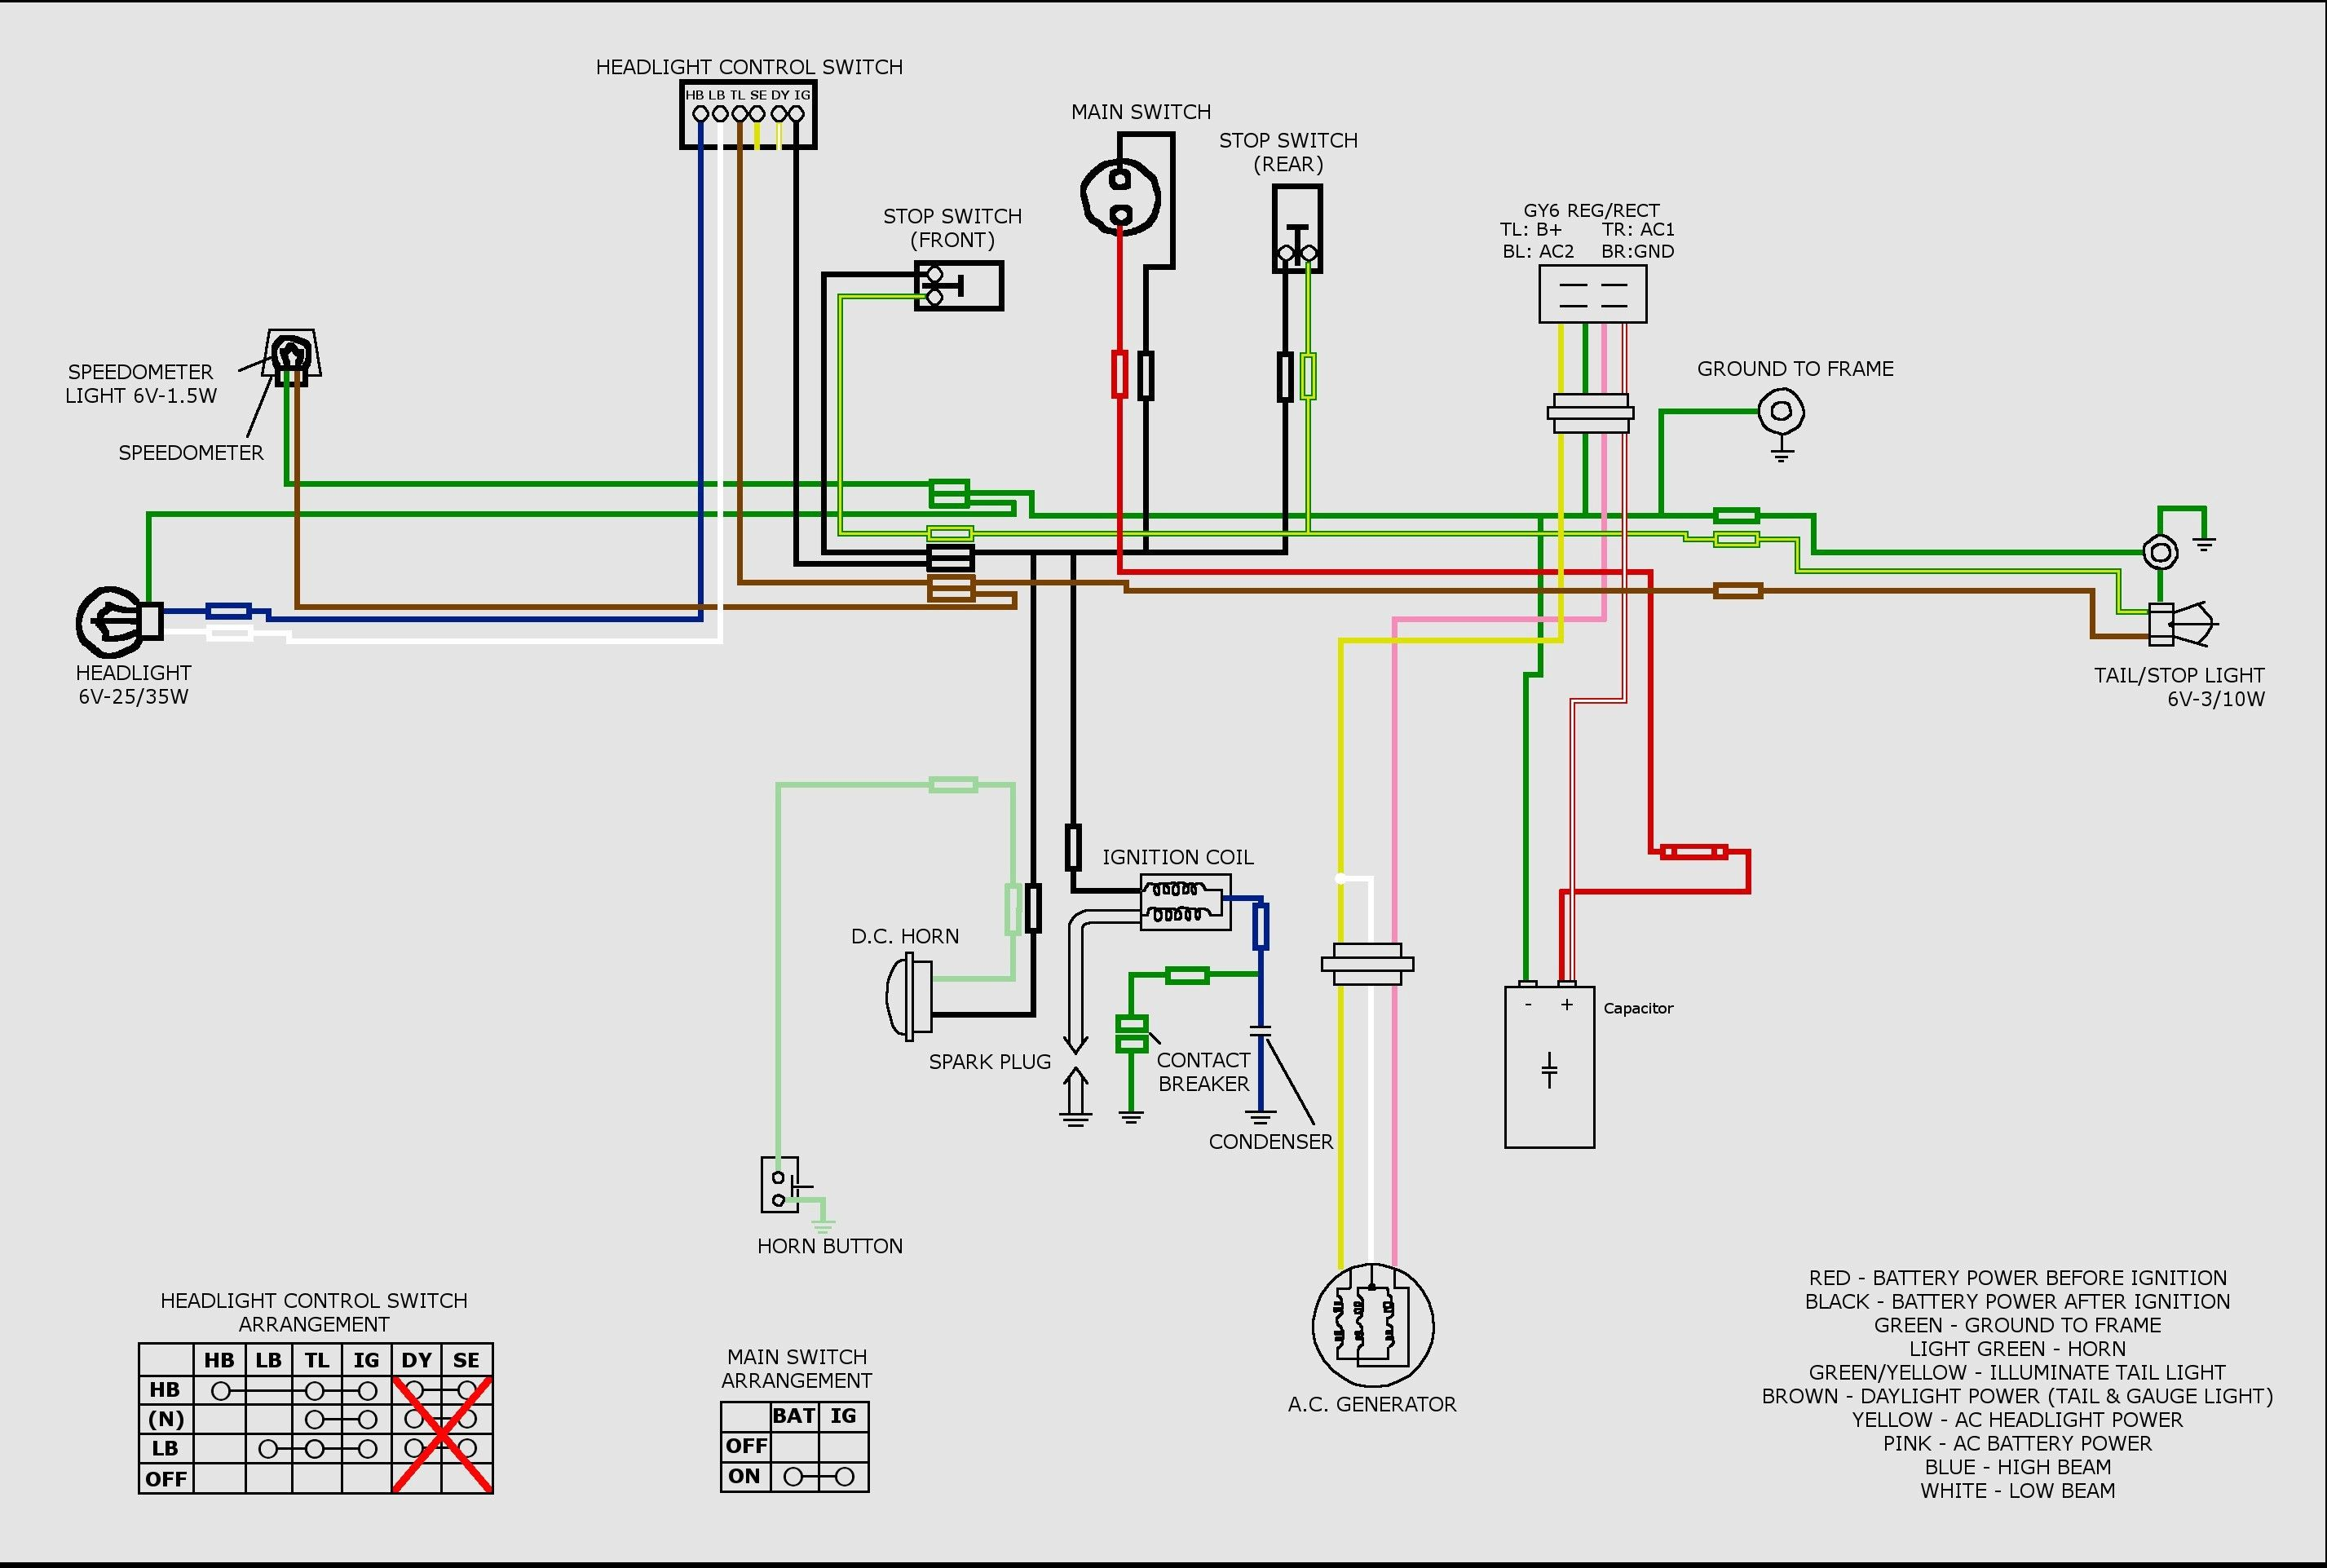 medium resolution of 47cc wiring diagram wiring diagram47cc wiring diagram 8